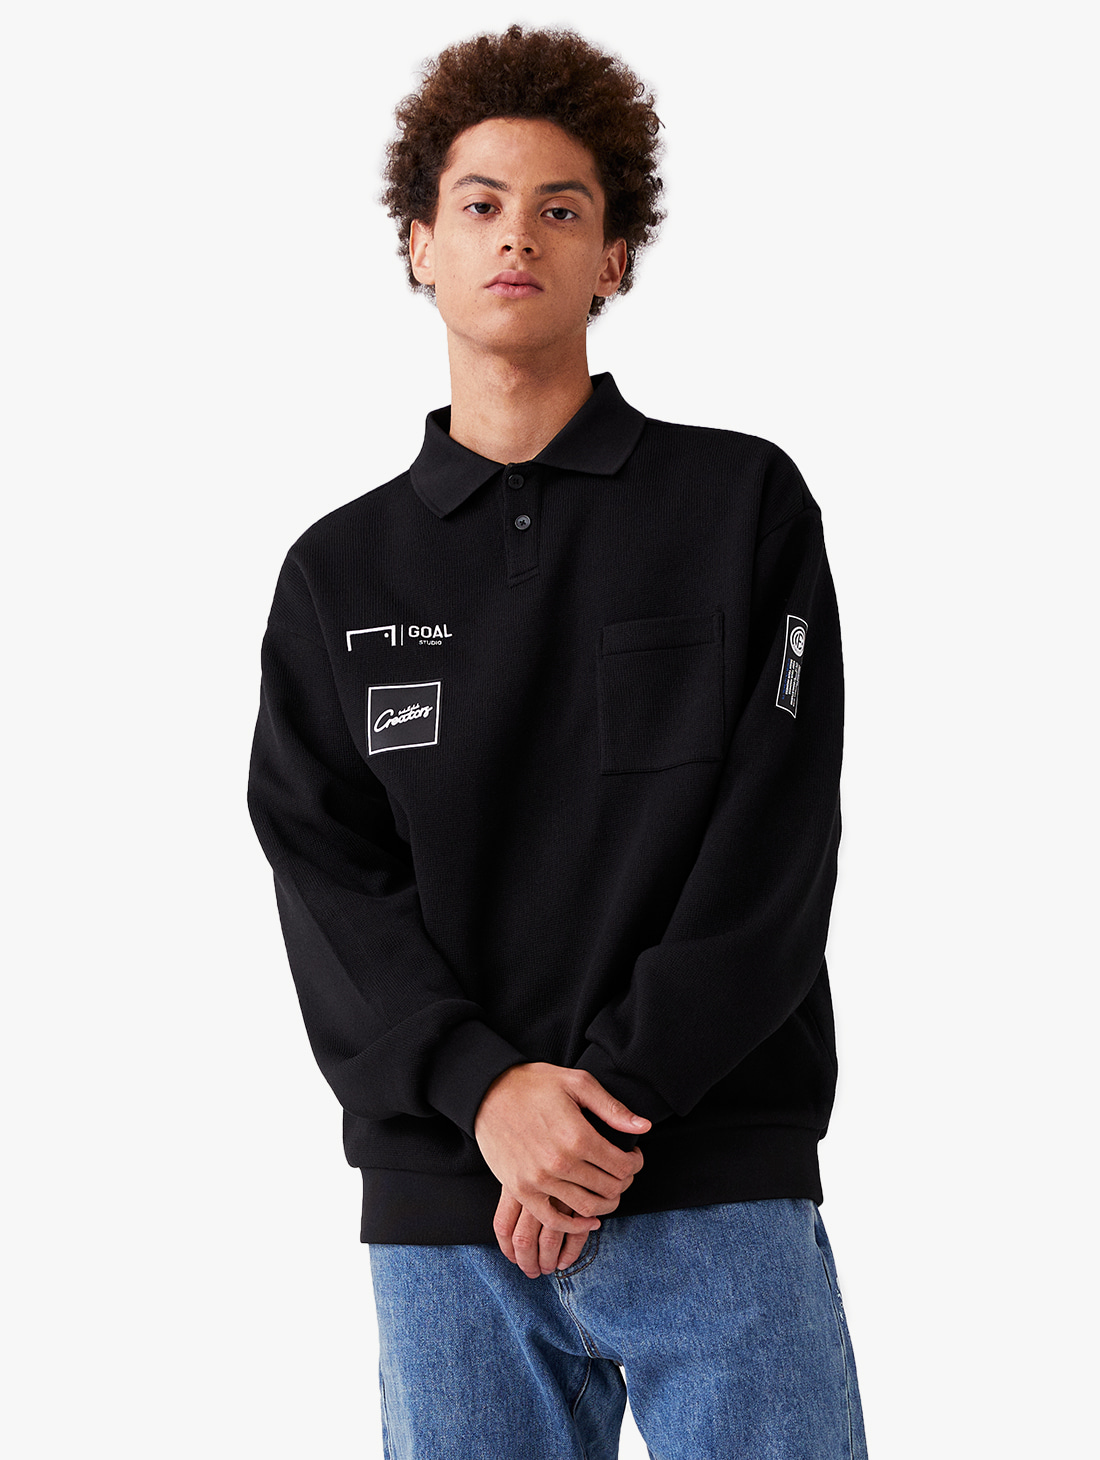 GOALSTUDIO CFC COLLARED KNIT SWEATSHIRT